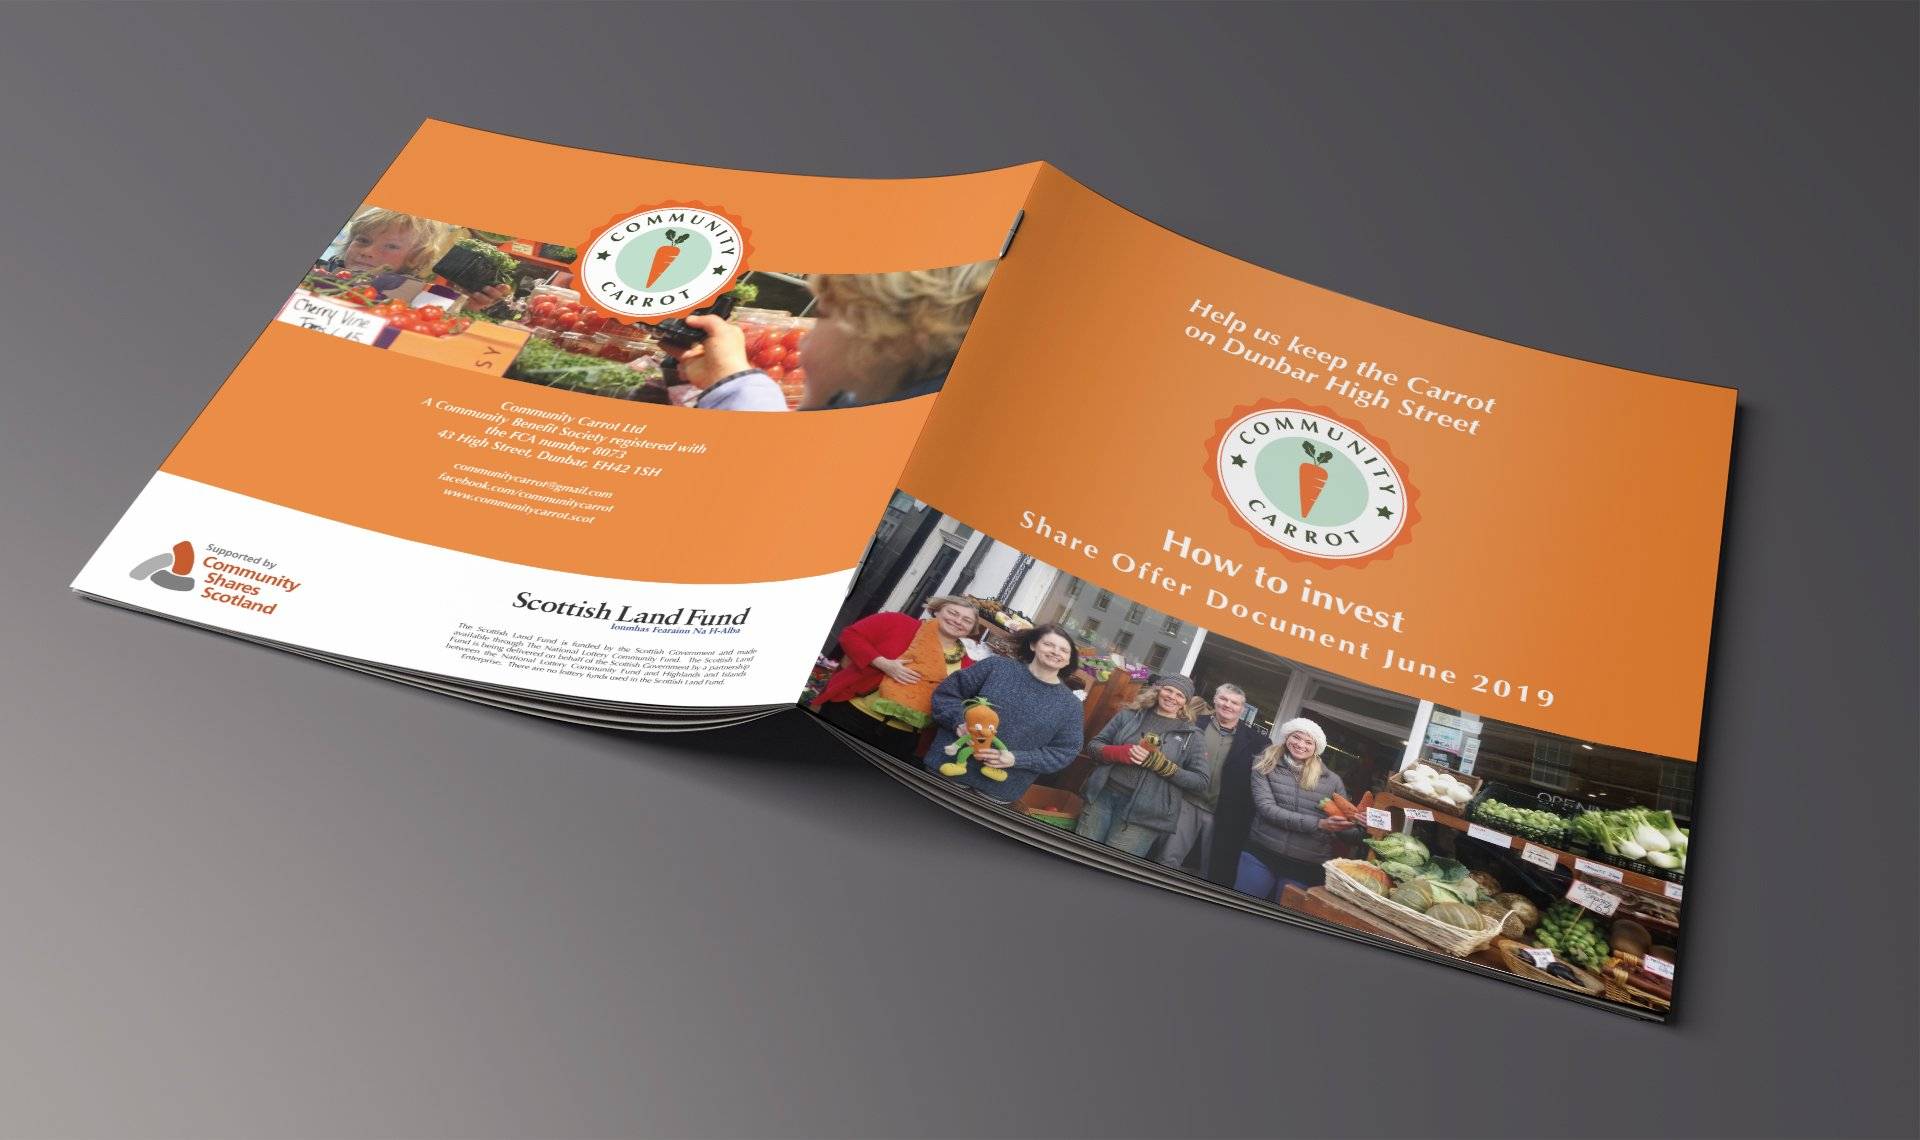 Community Carrot leaflet for funding and shares